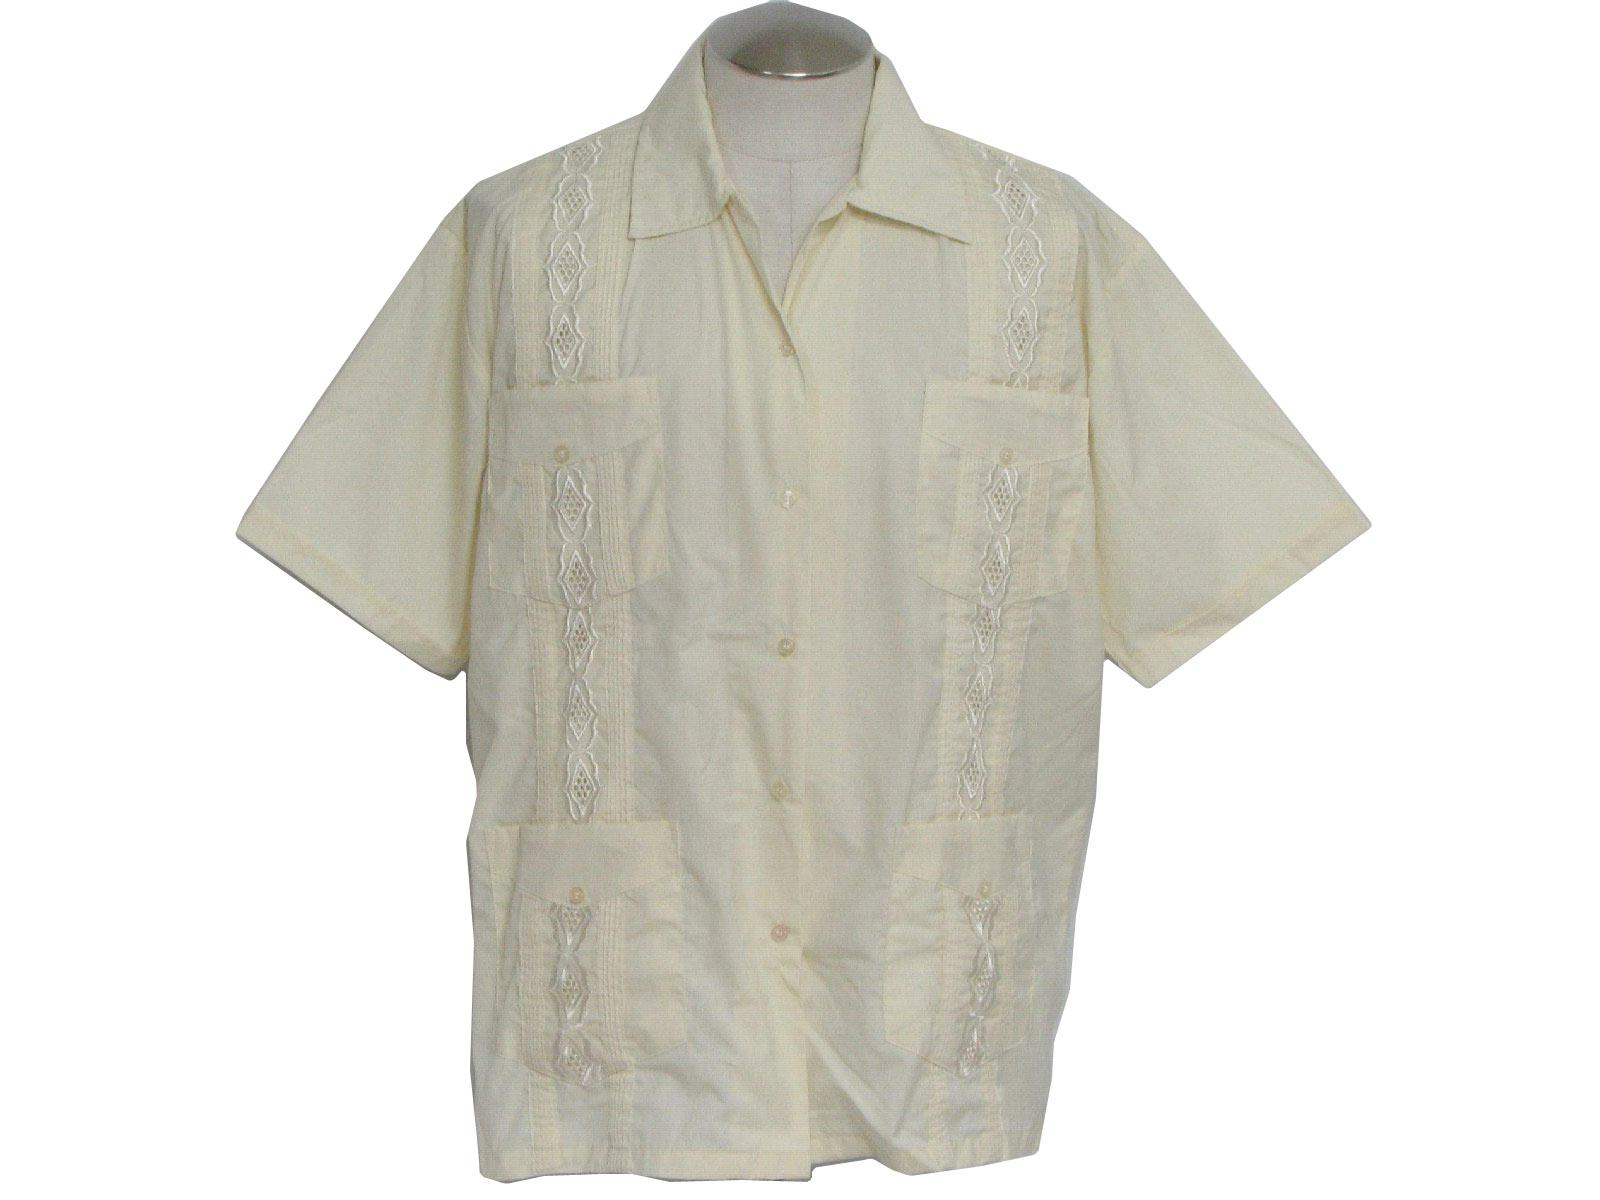 80s -Chic Elegant- Mens pale